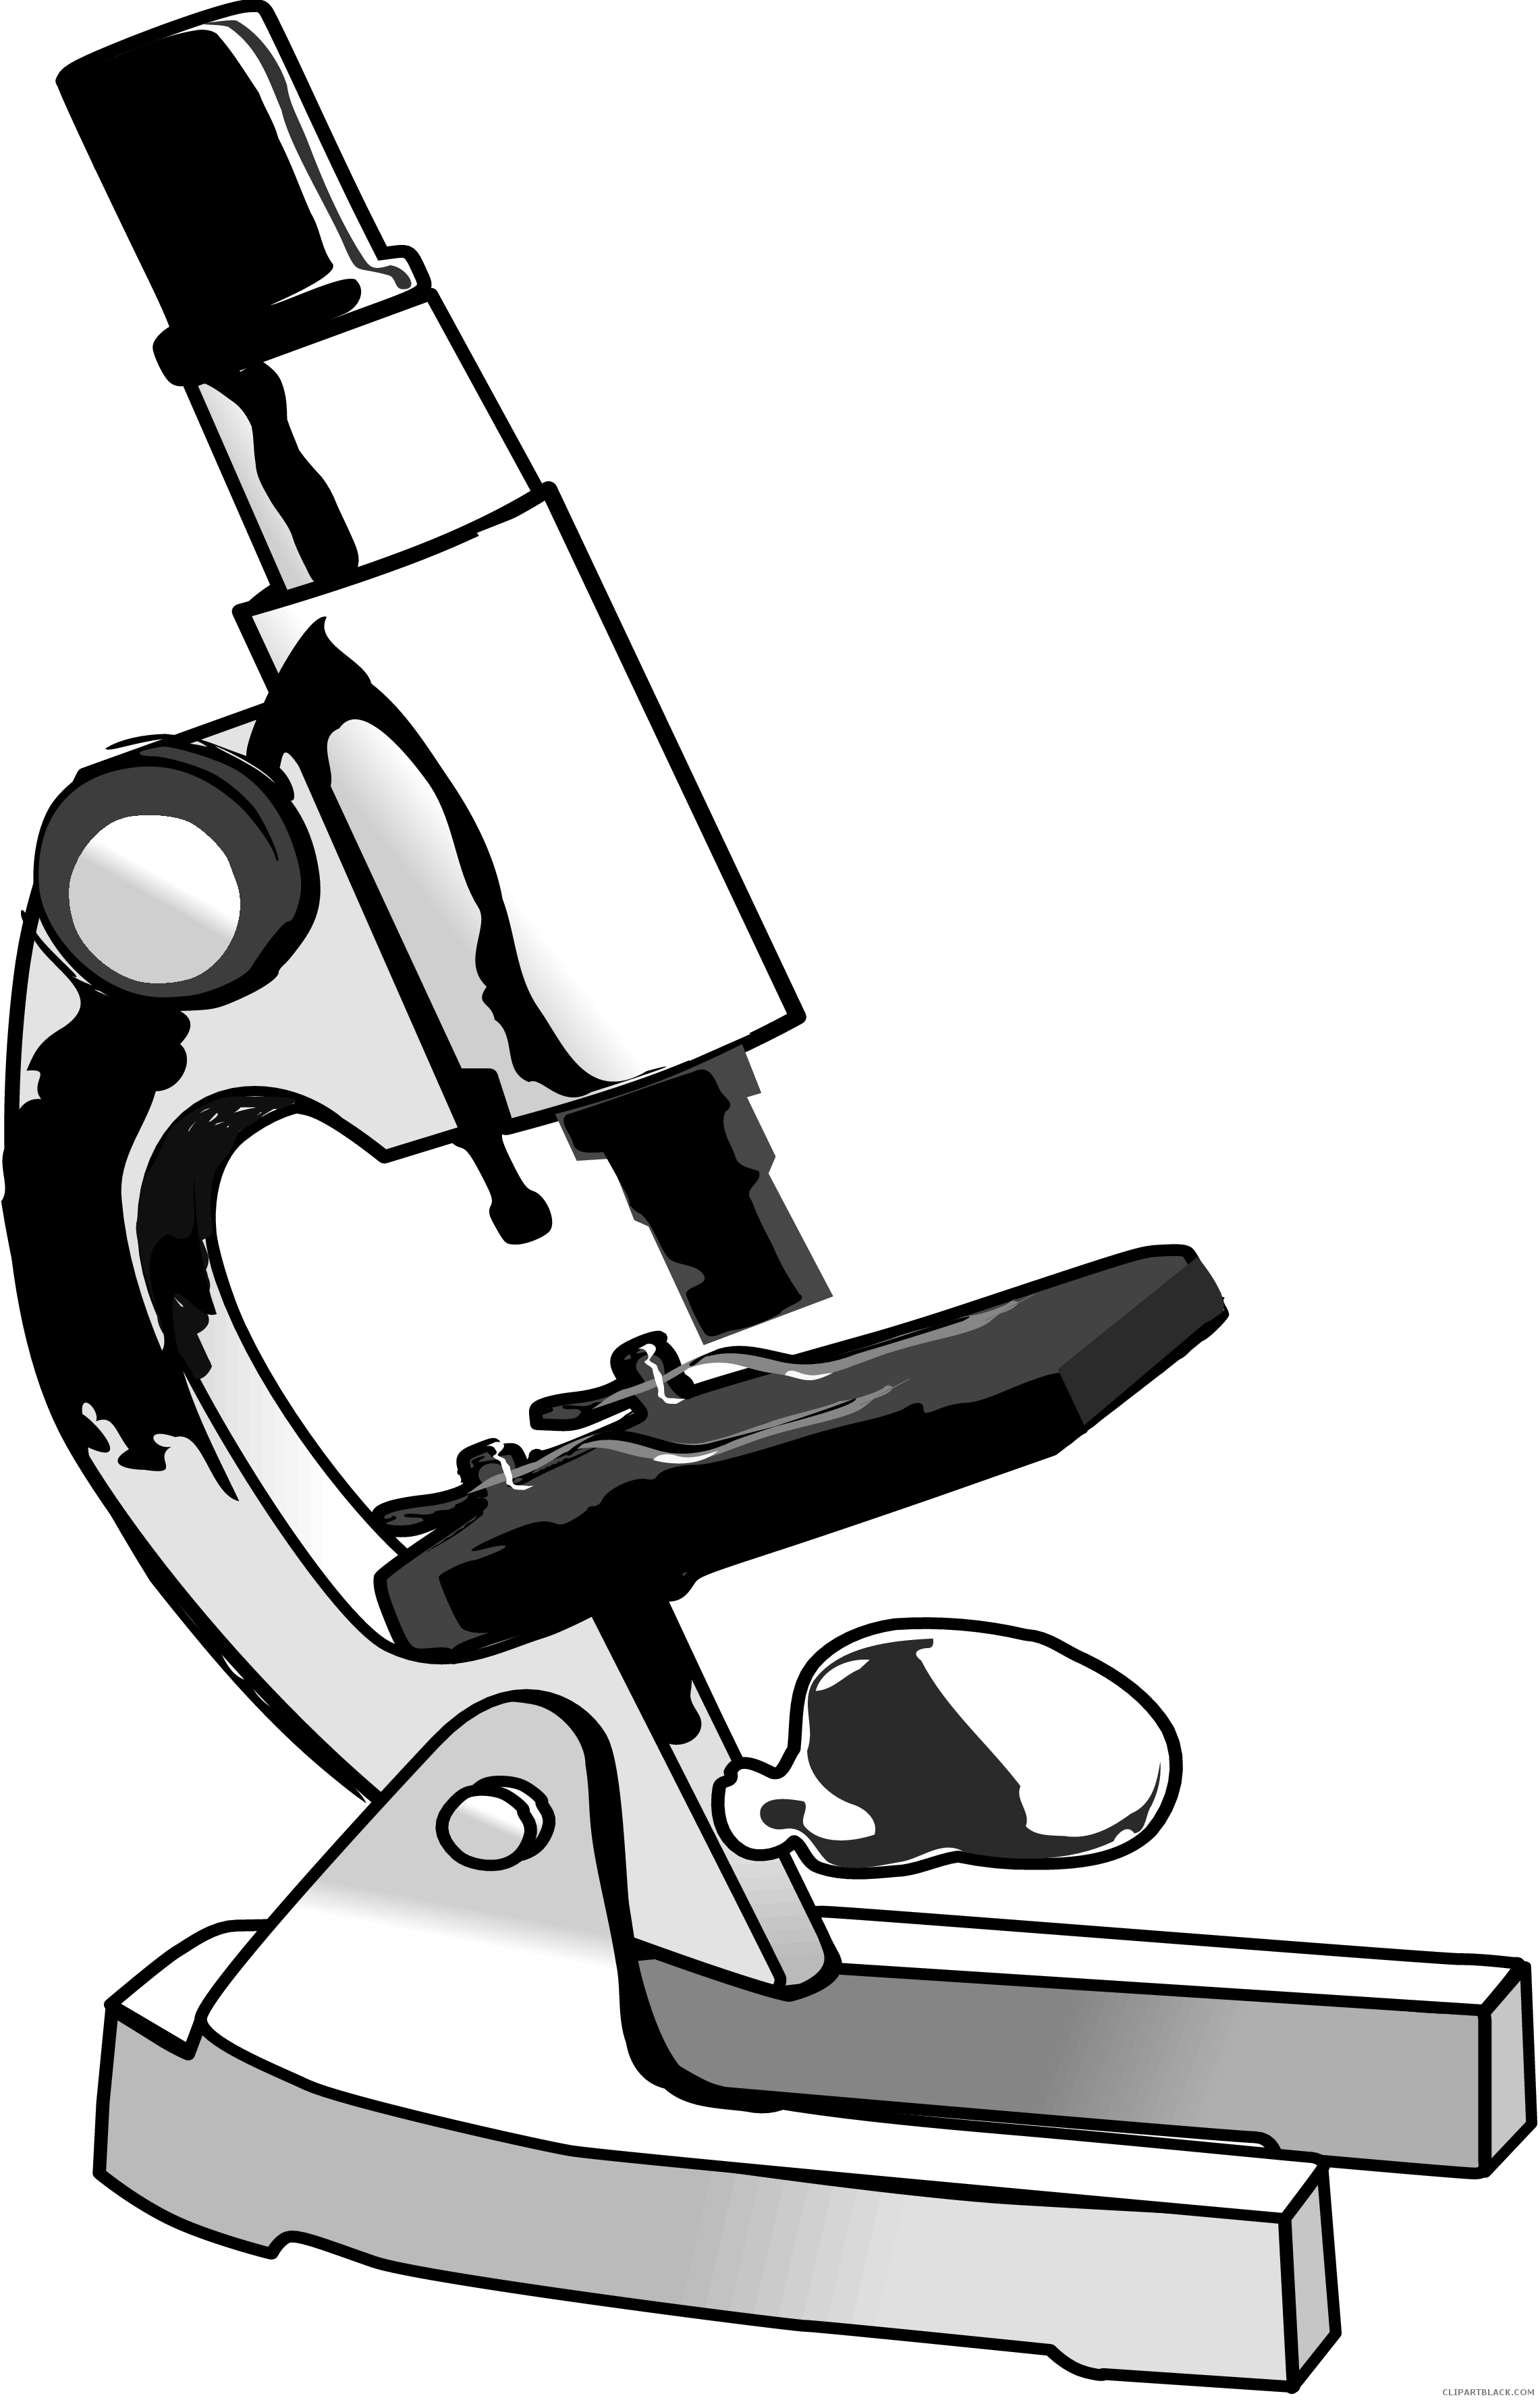 Vector Light Microscope Optical Graphics Download Free Image PNG Image